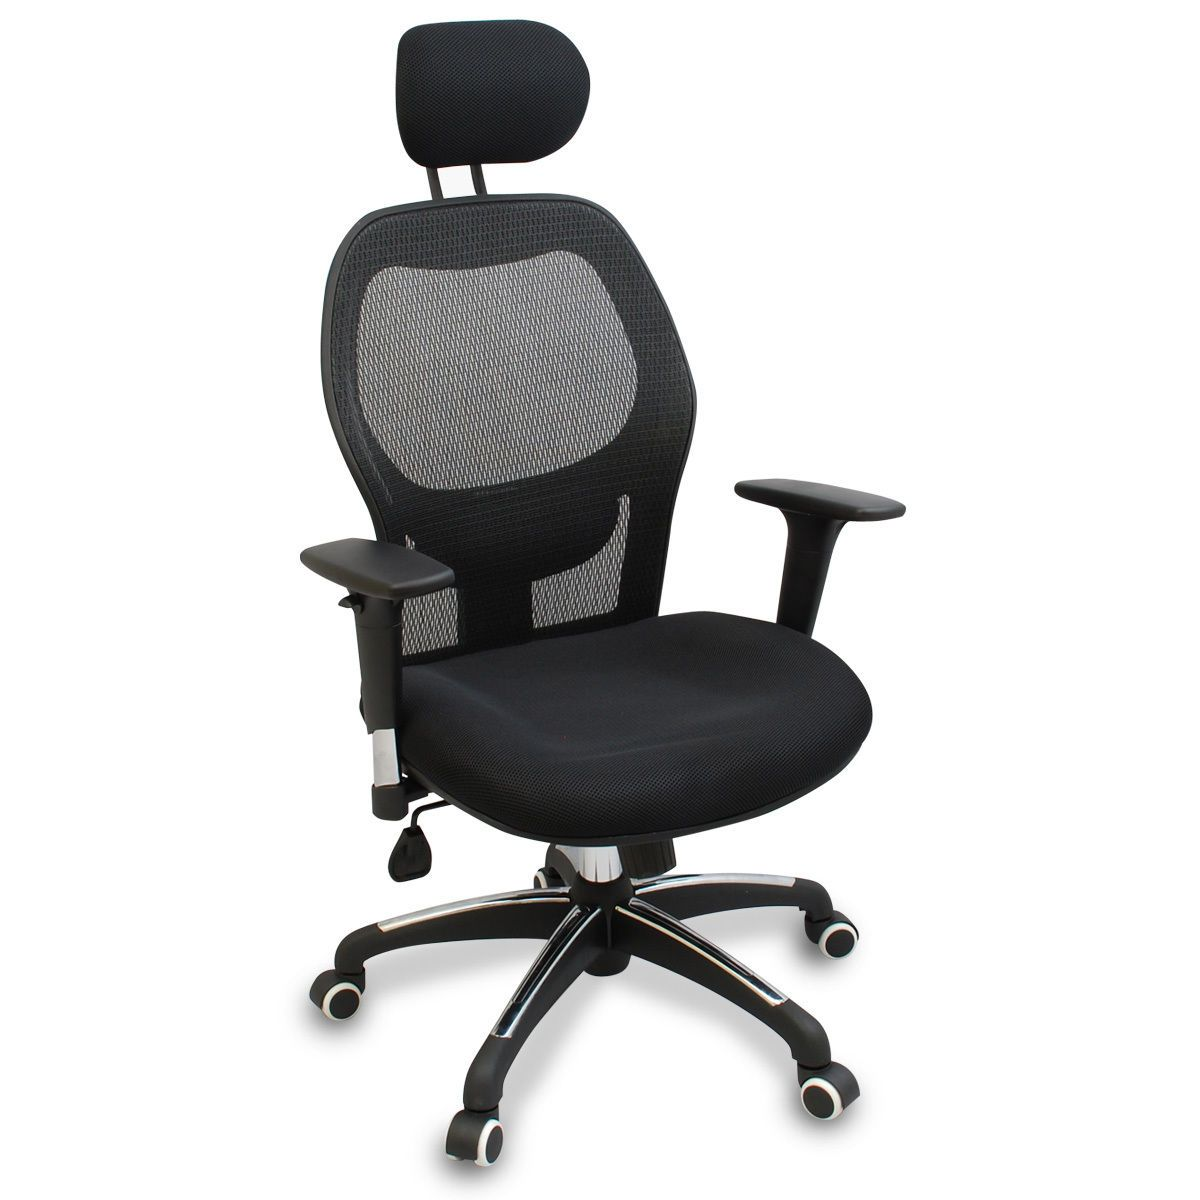 New Mesh Ergonomic Office Chair W Adjustable Headrest Arms And Lumbar Support Ergonomic Chair Ergonomic Office Chair Office Chair